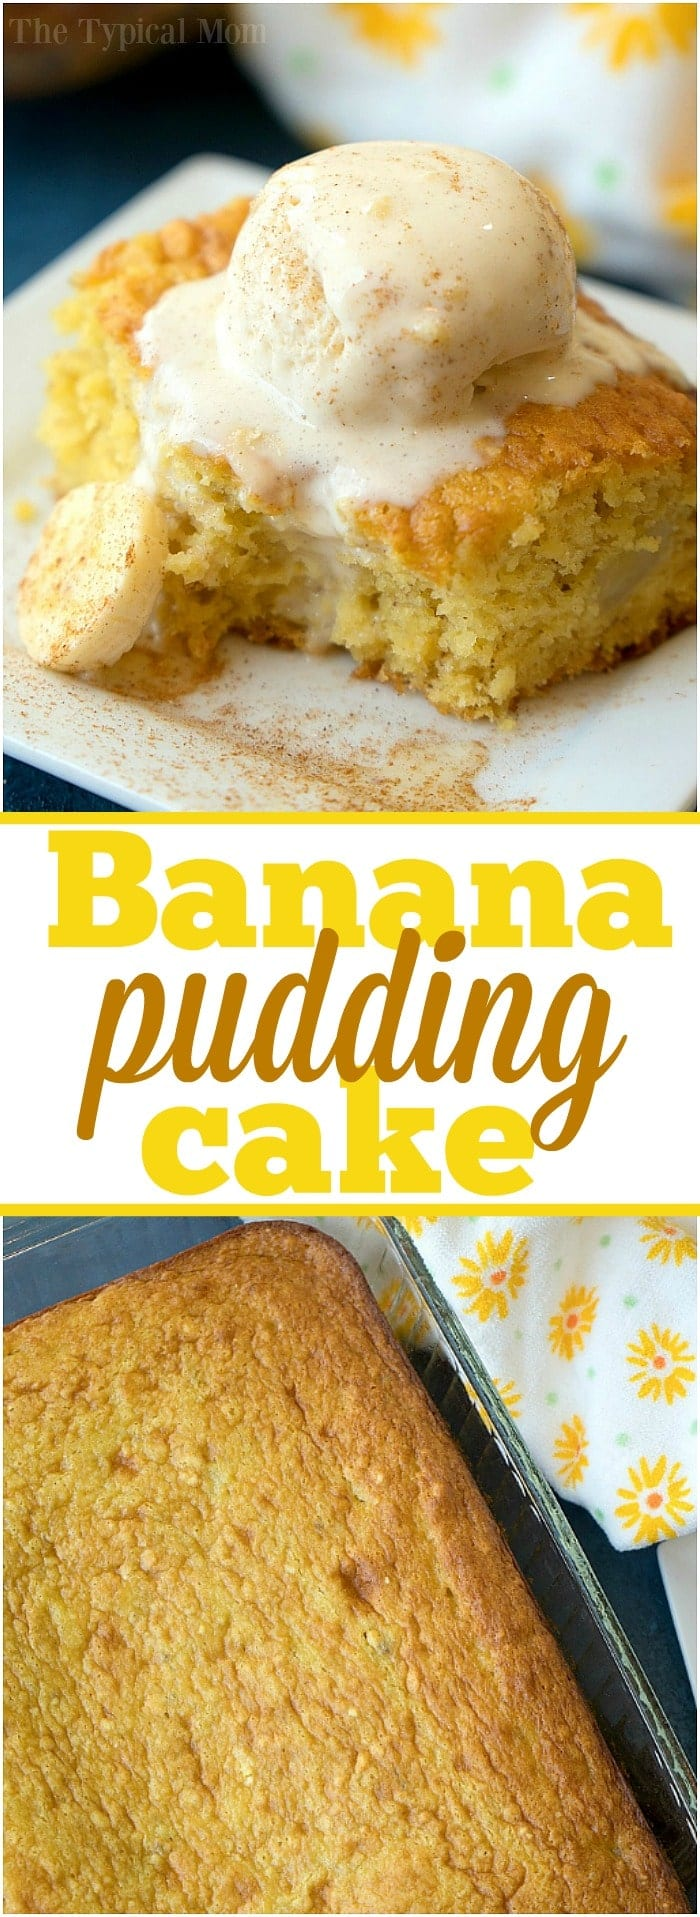 The best banana pudding cake you'll ever make! Loaded with ripe bananas and a touch of cinnamon this easy cake turns out moist and delicious every time. #banana #cake #pudding